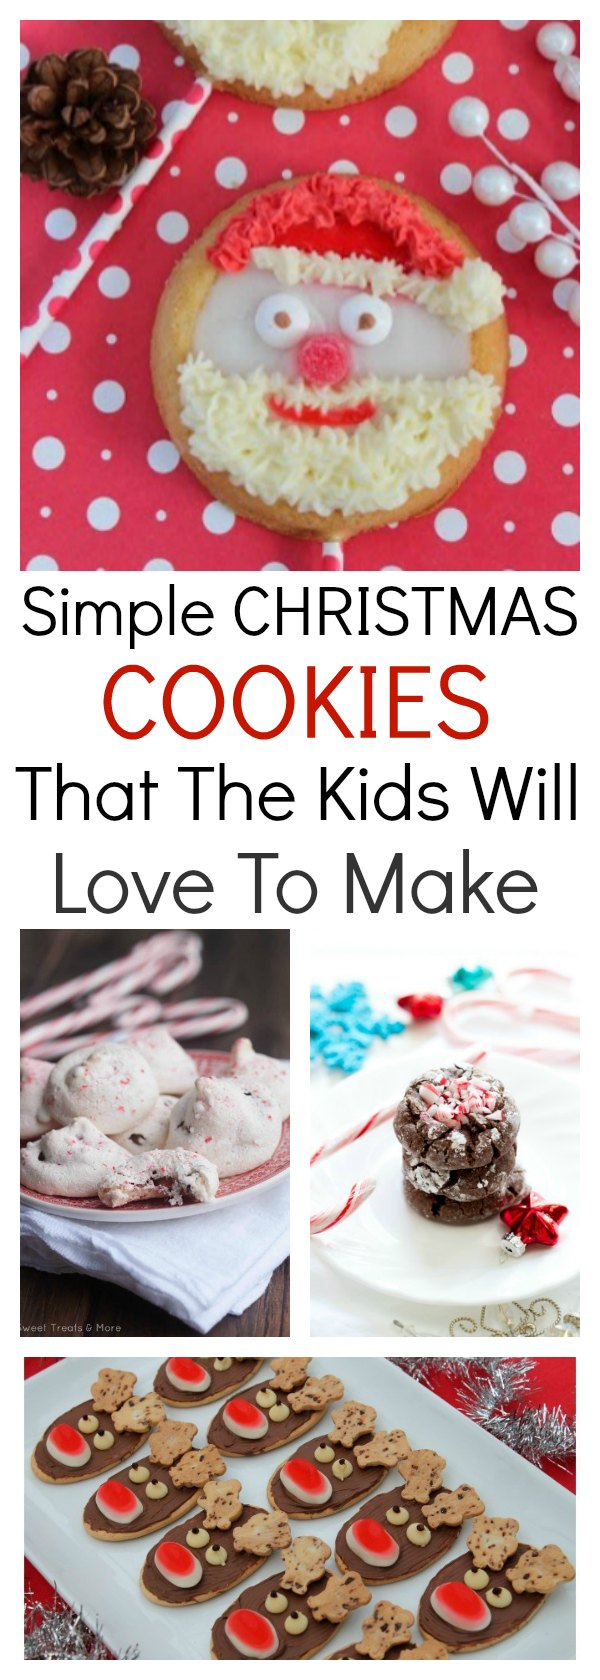 This collection of simple Christmas cookies will have you in the kitchen with the kids quick smart. Cute, easy & delicious, they are perfect for Christmas.